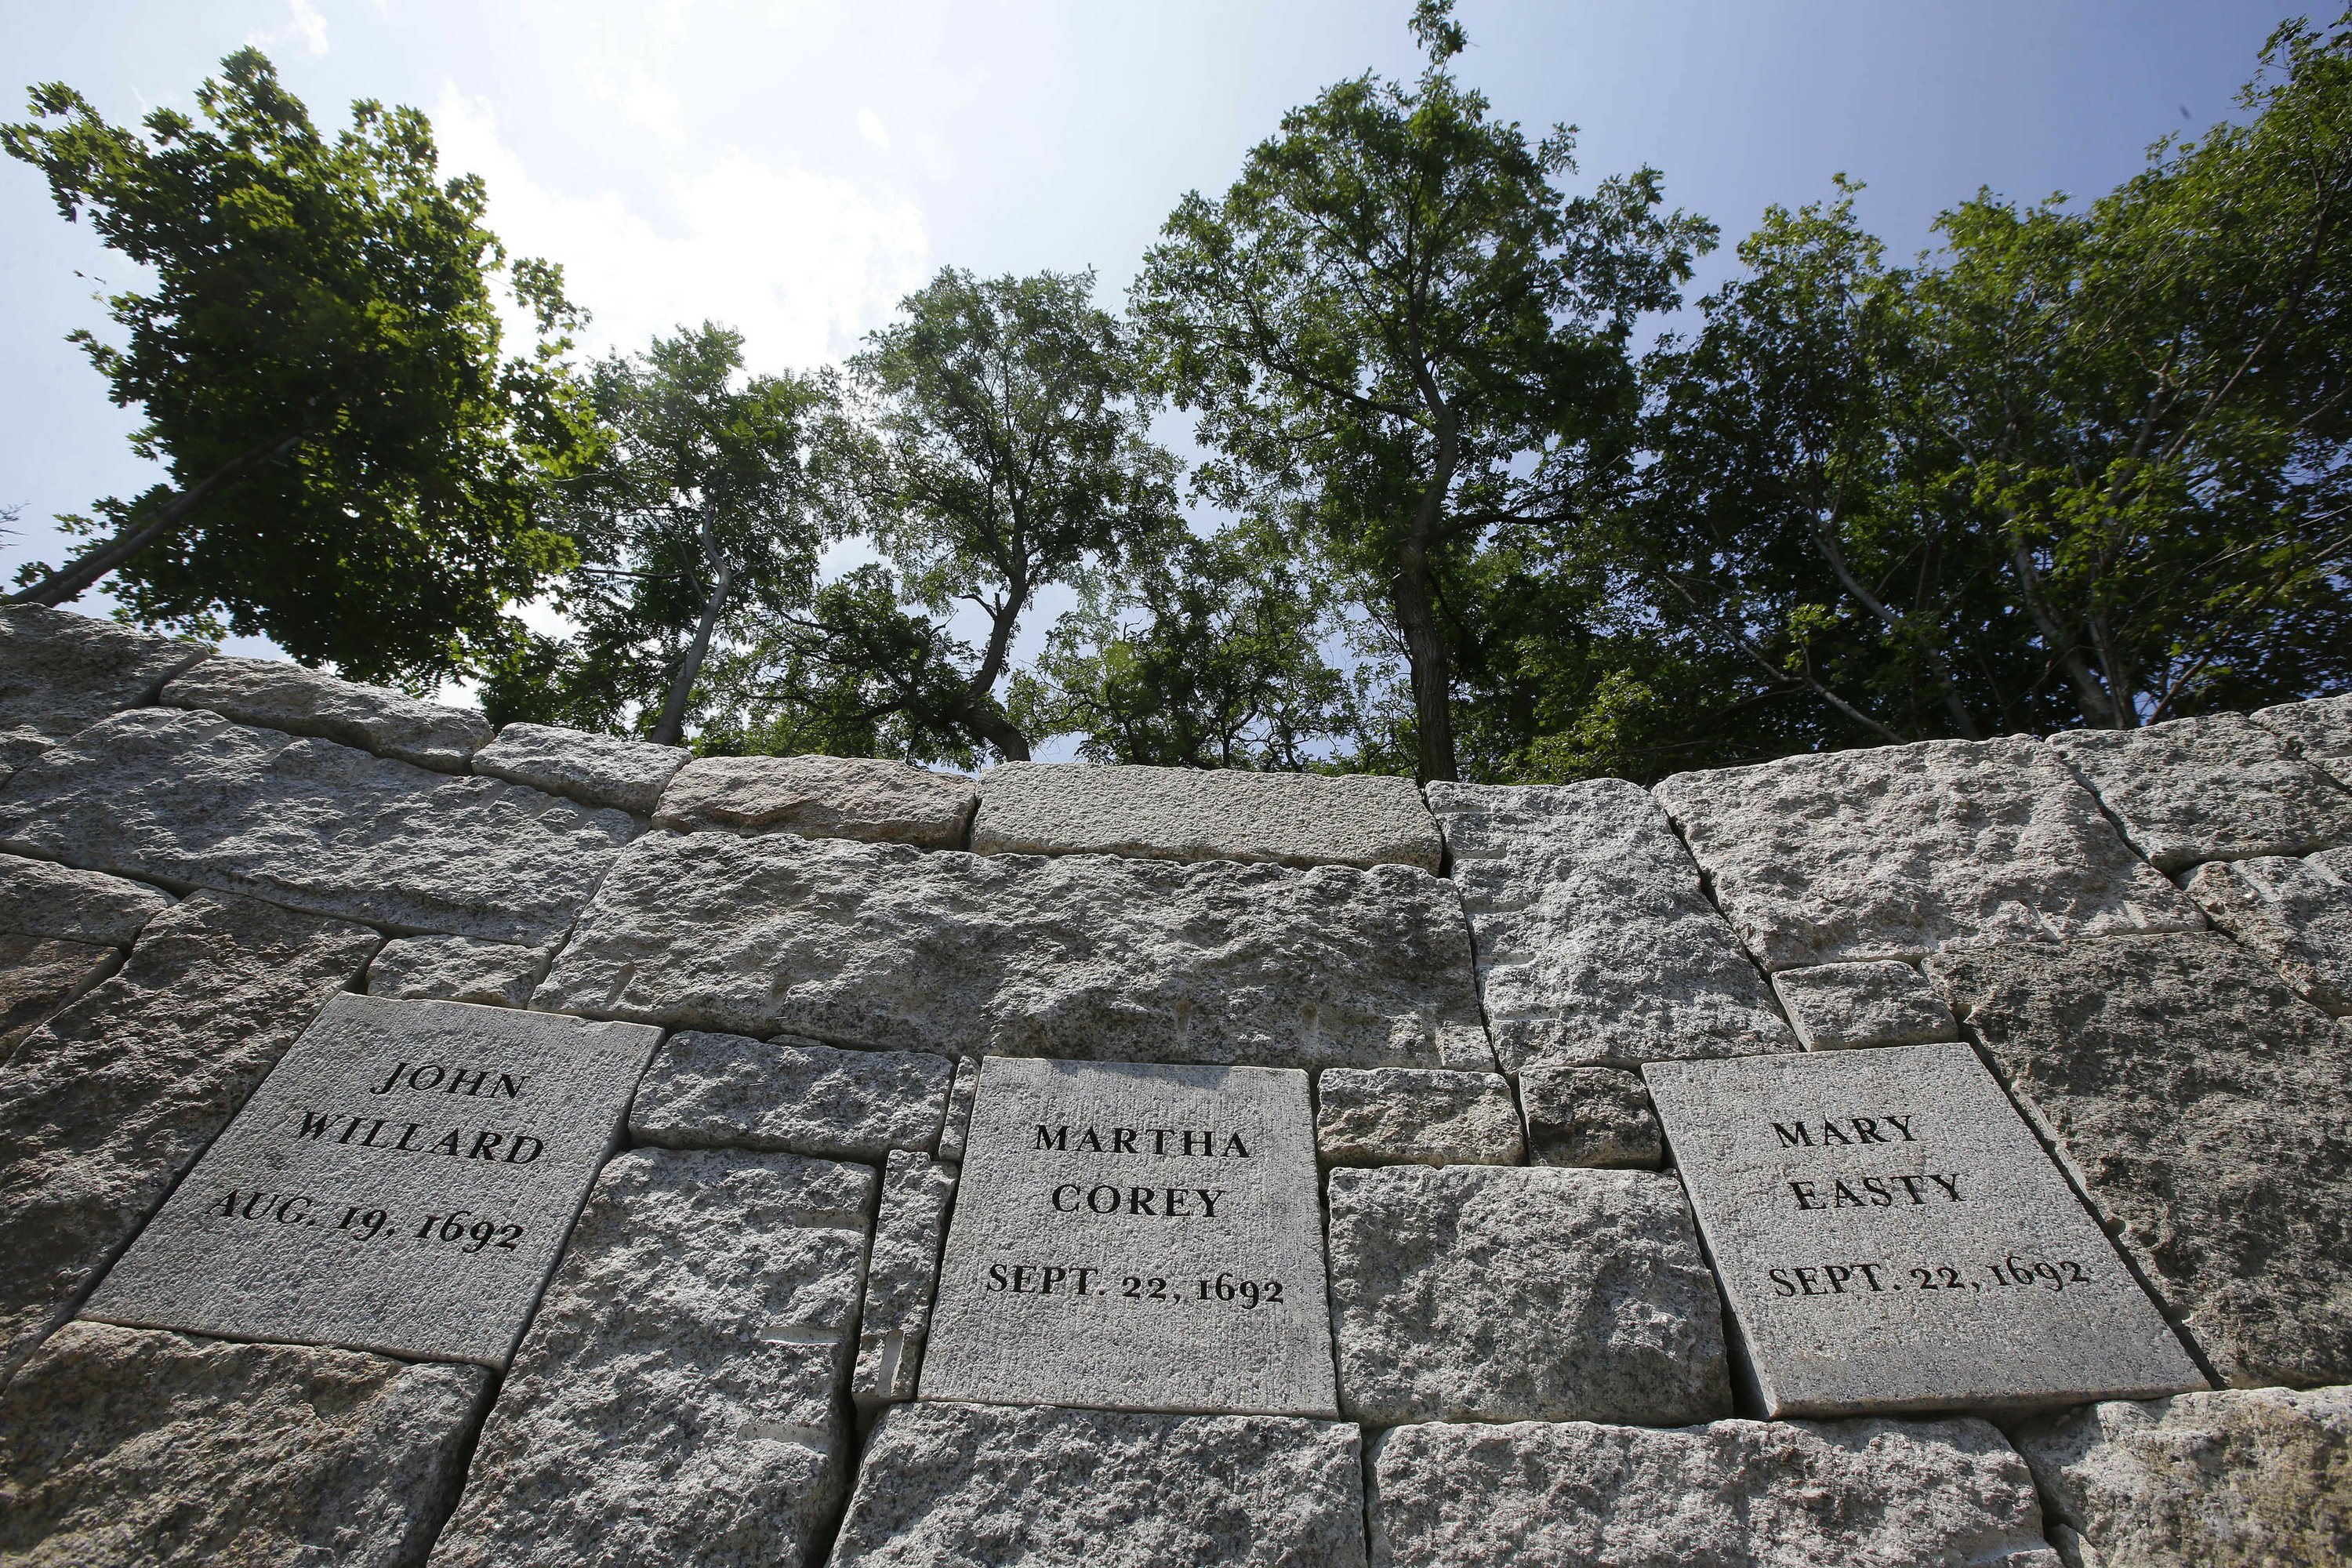 5 killed in Salem witch hunt remembered on 325th anniversary